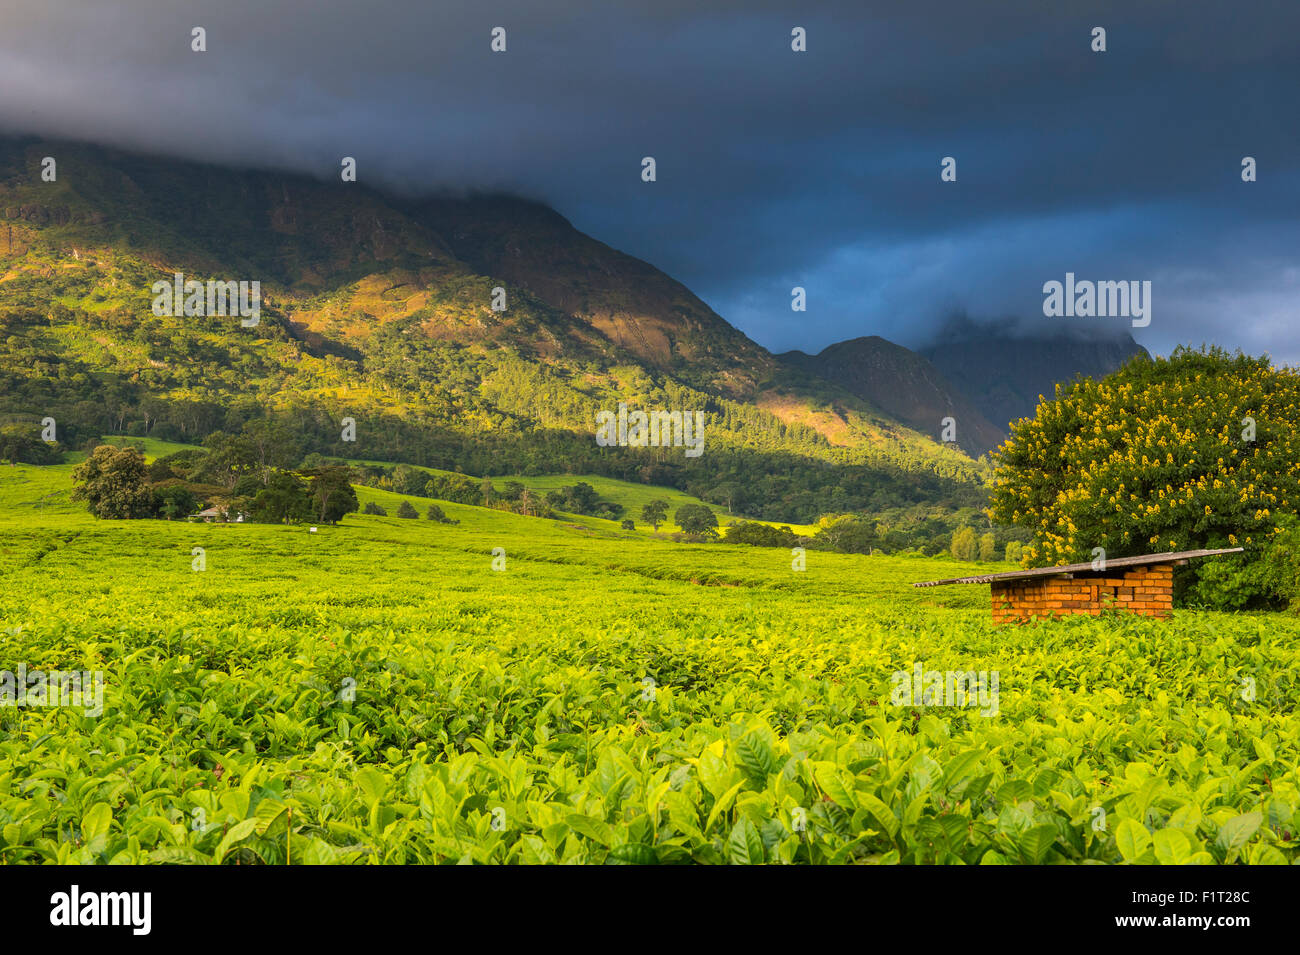 Tea estate on Mount Mulanje, Malawi, Africa - Stock Image